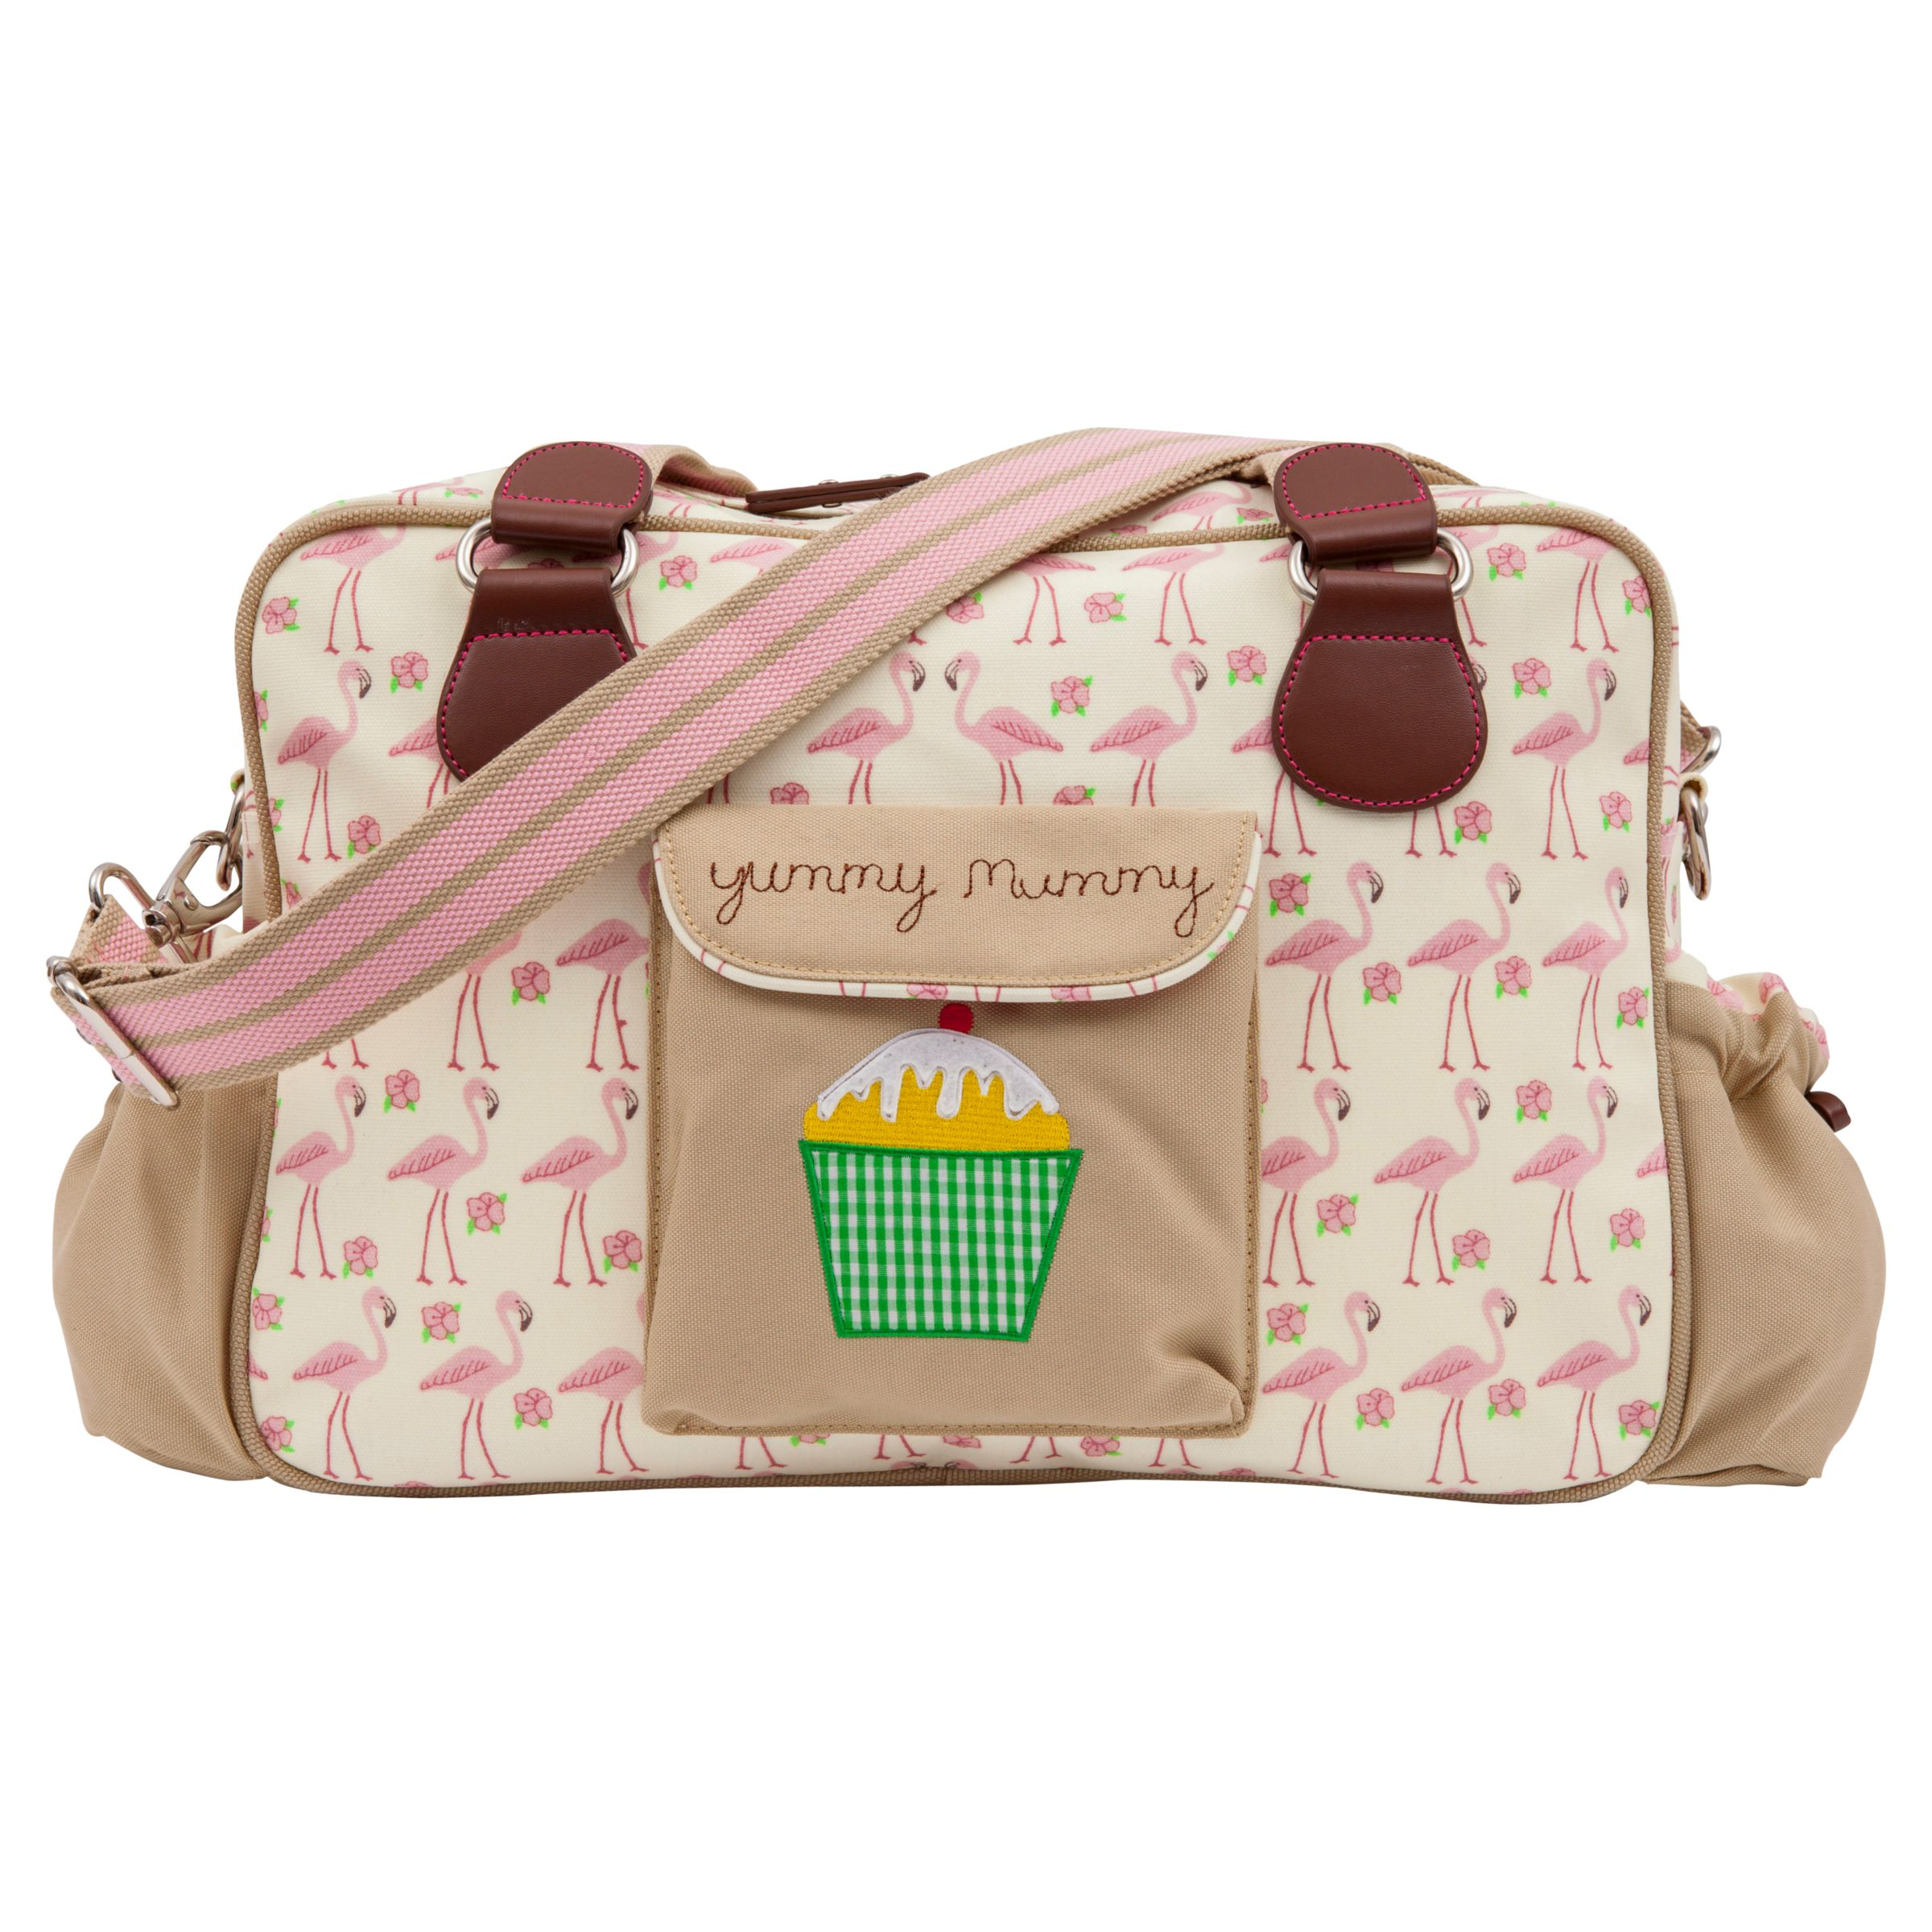 Pink Lining Yummy Mummy Changing Bag Flamingo